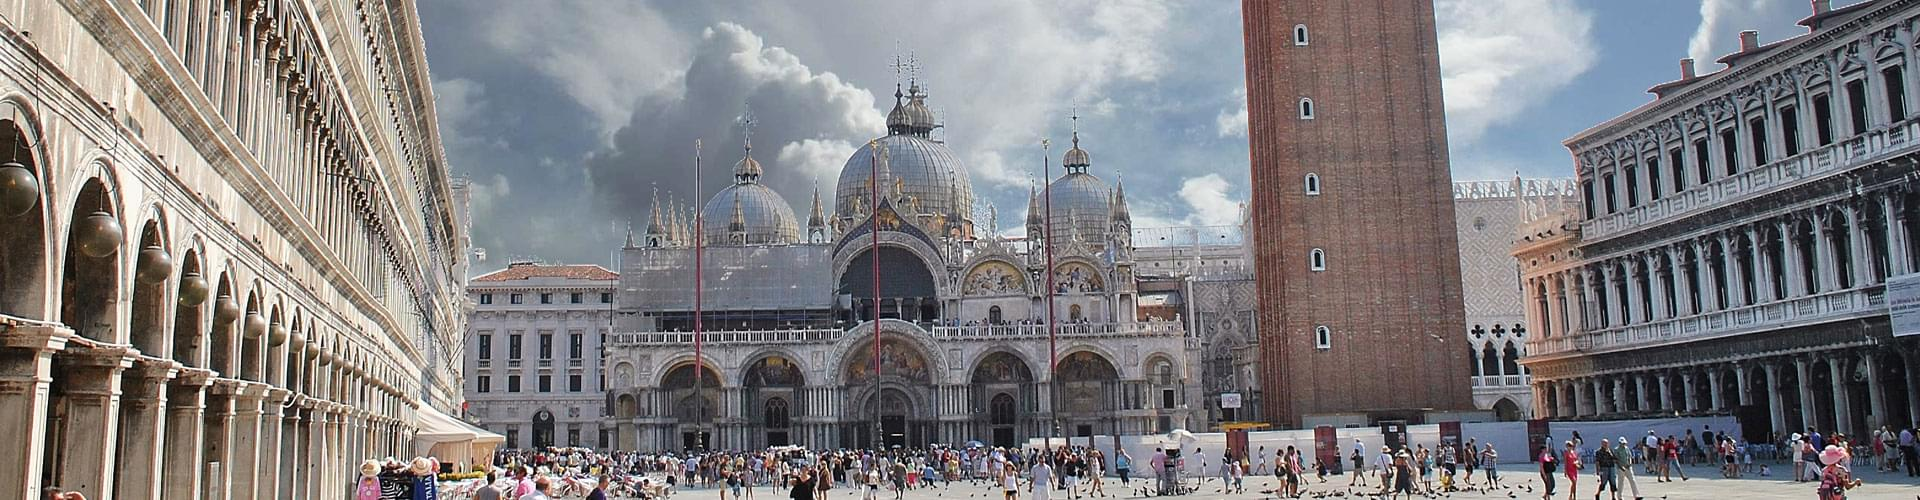 St Mark's, st mark's basilica, basilica of saint mark